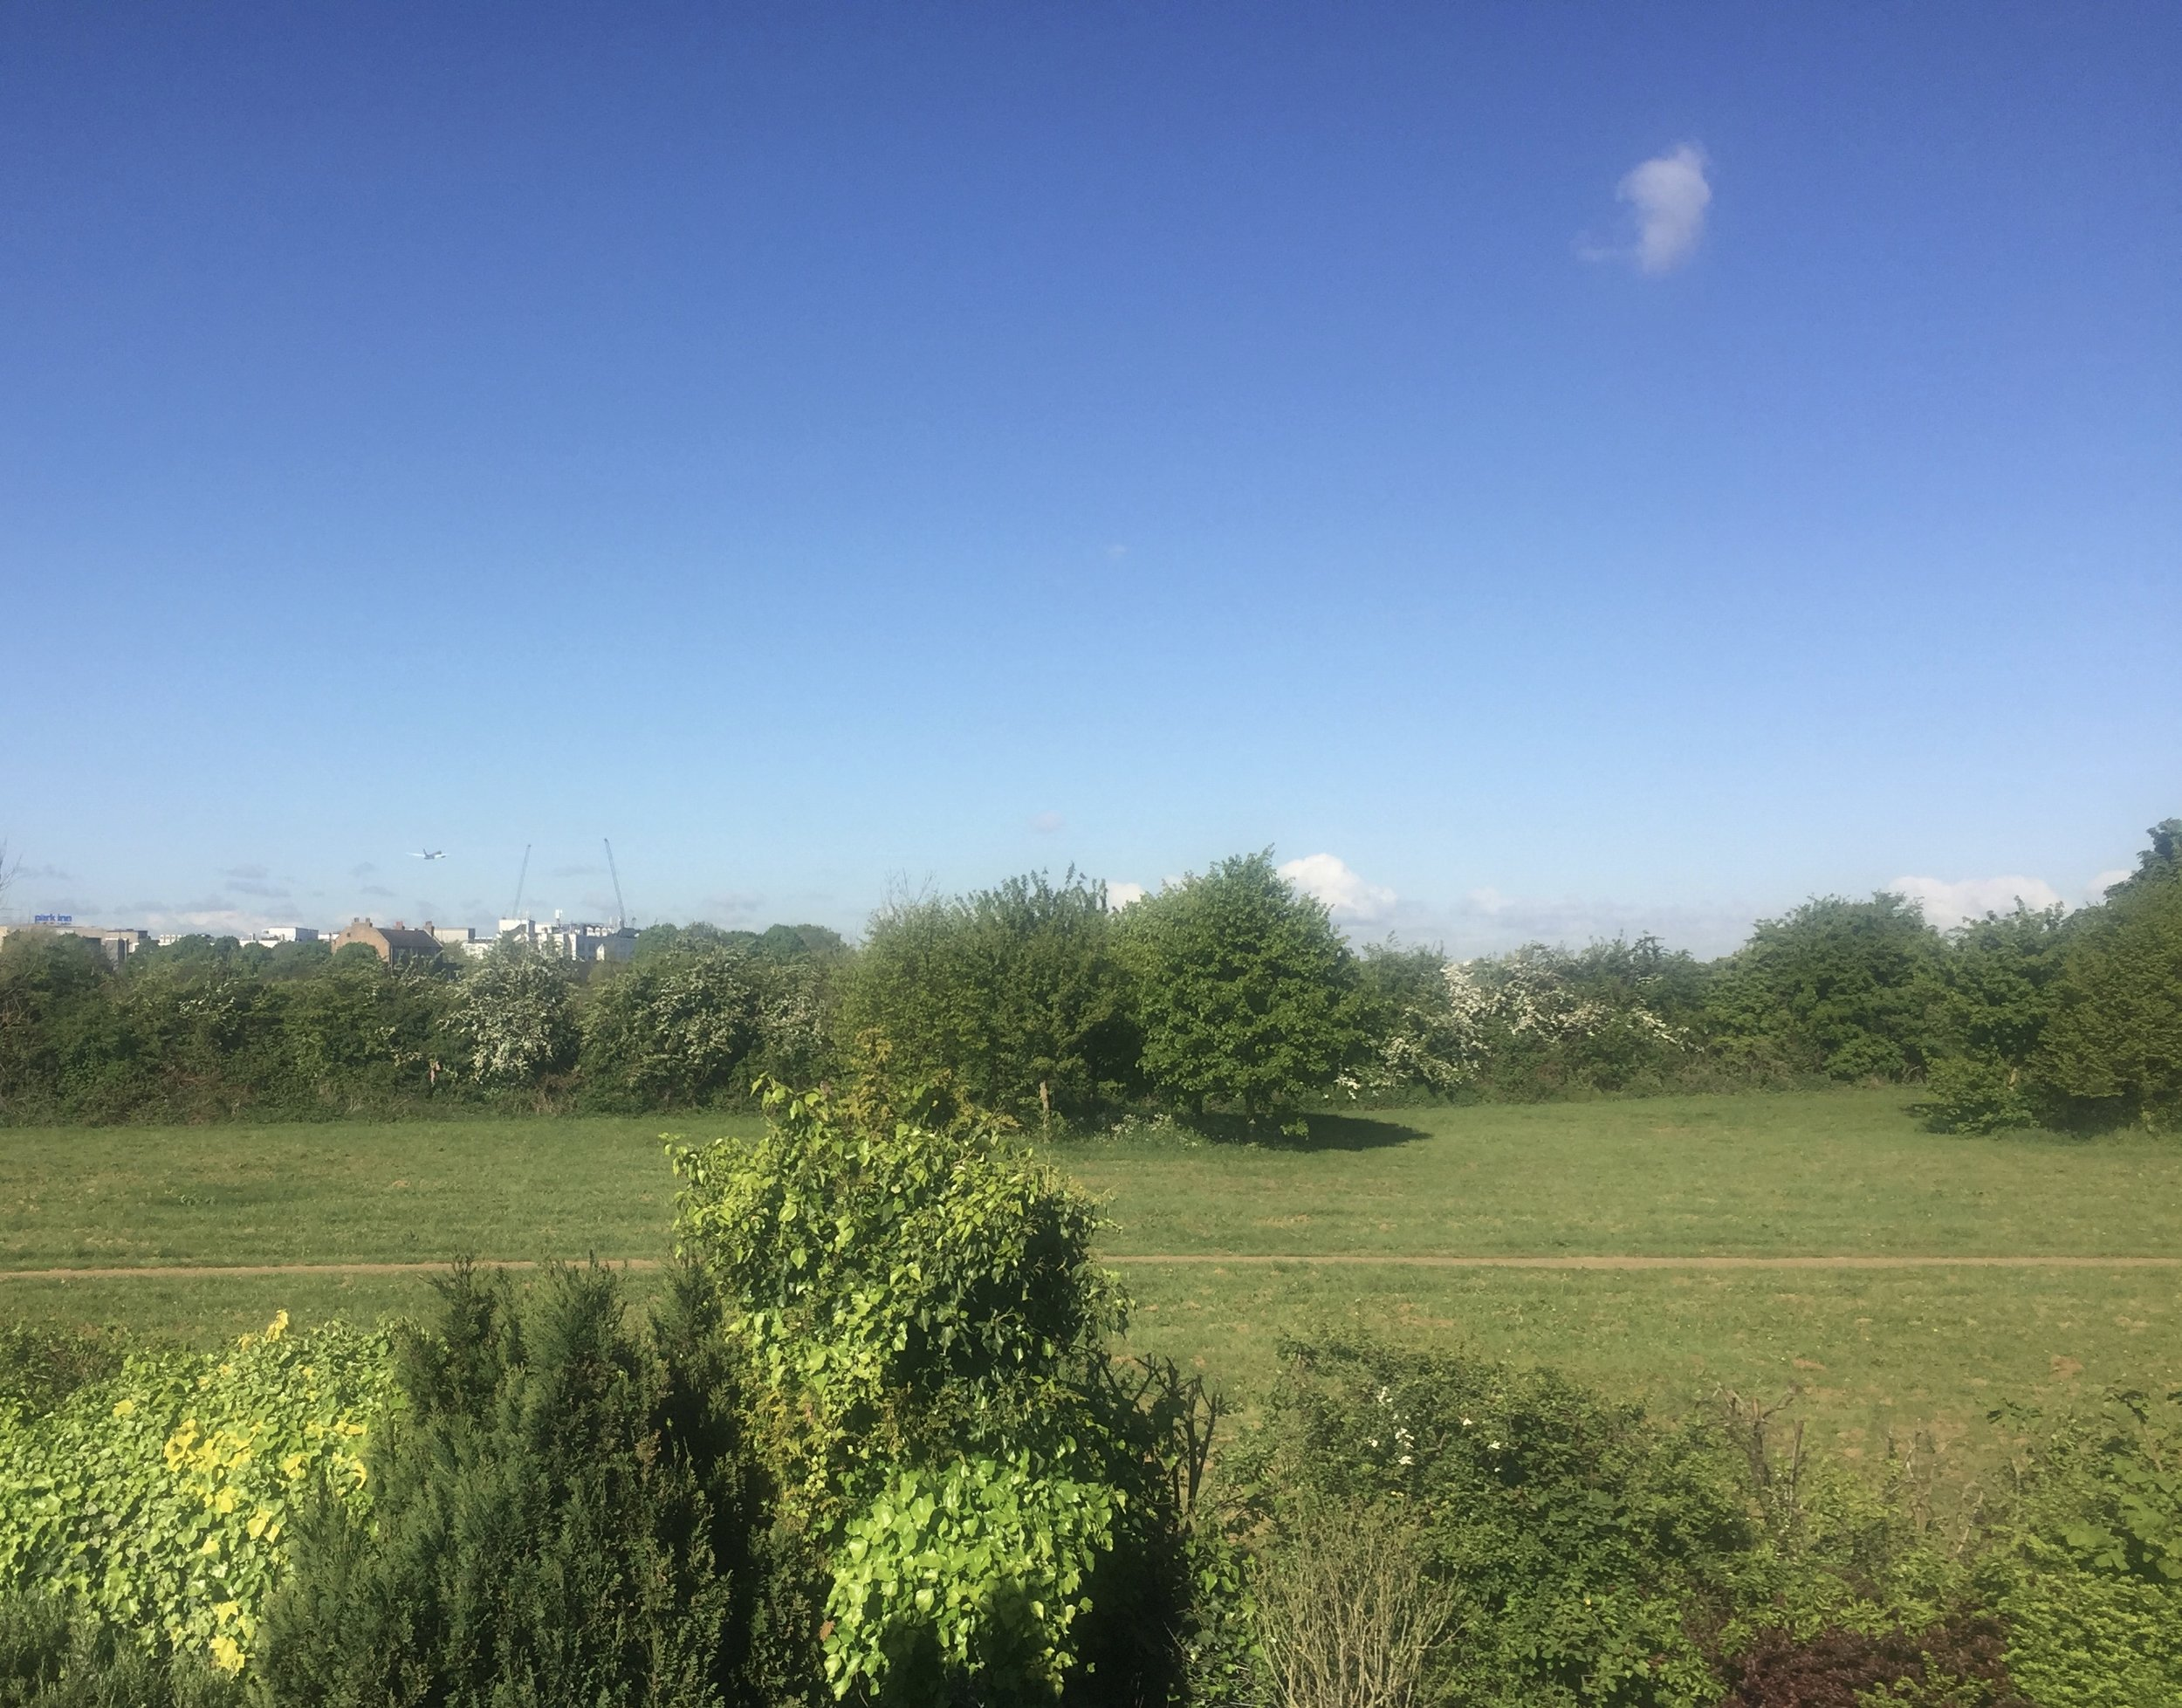 Parkland in the Heathrow Villages, which would be unusable with Heathrow expansion. There was just one cloud in the sky first thing this morning - you can't see the particulates.